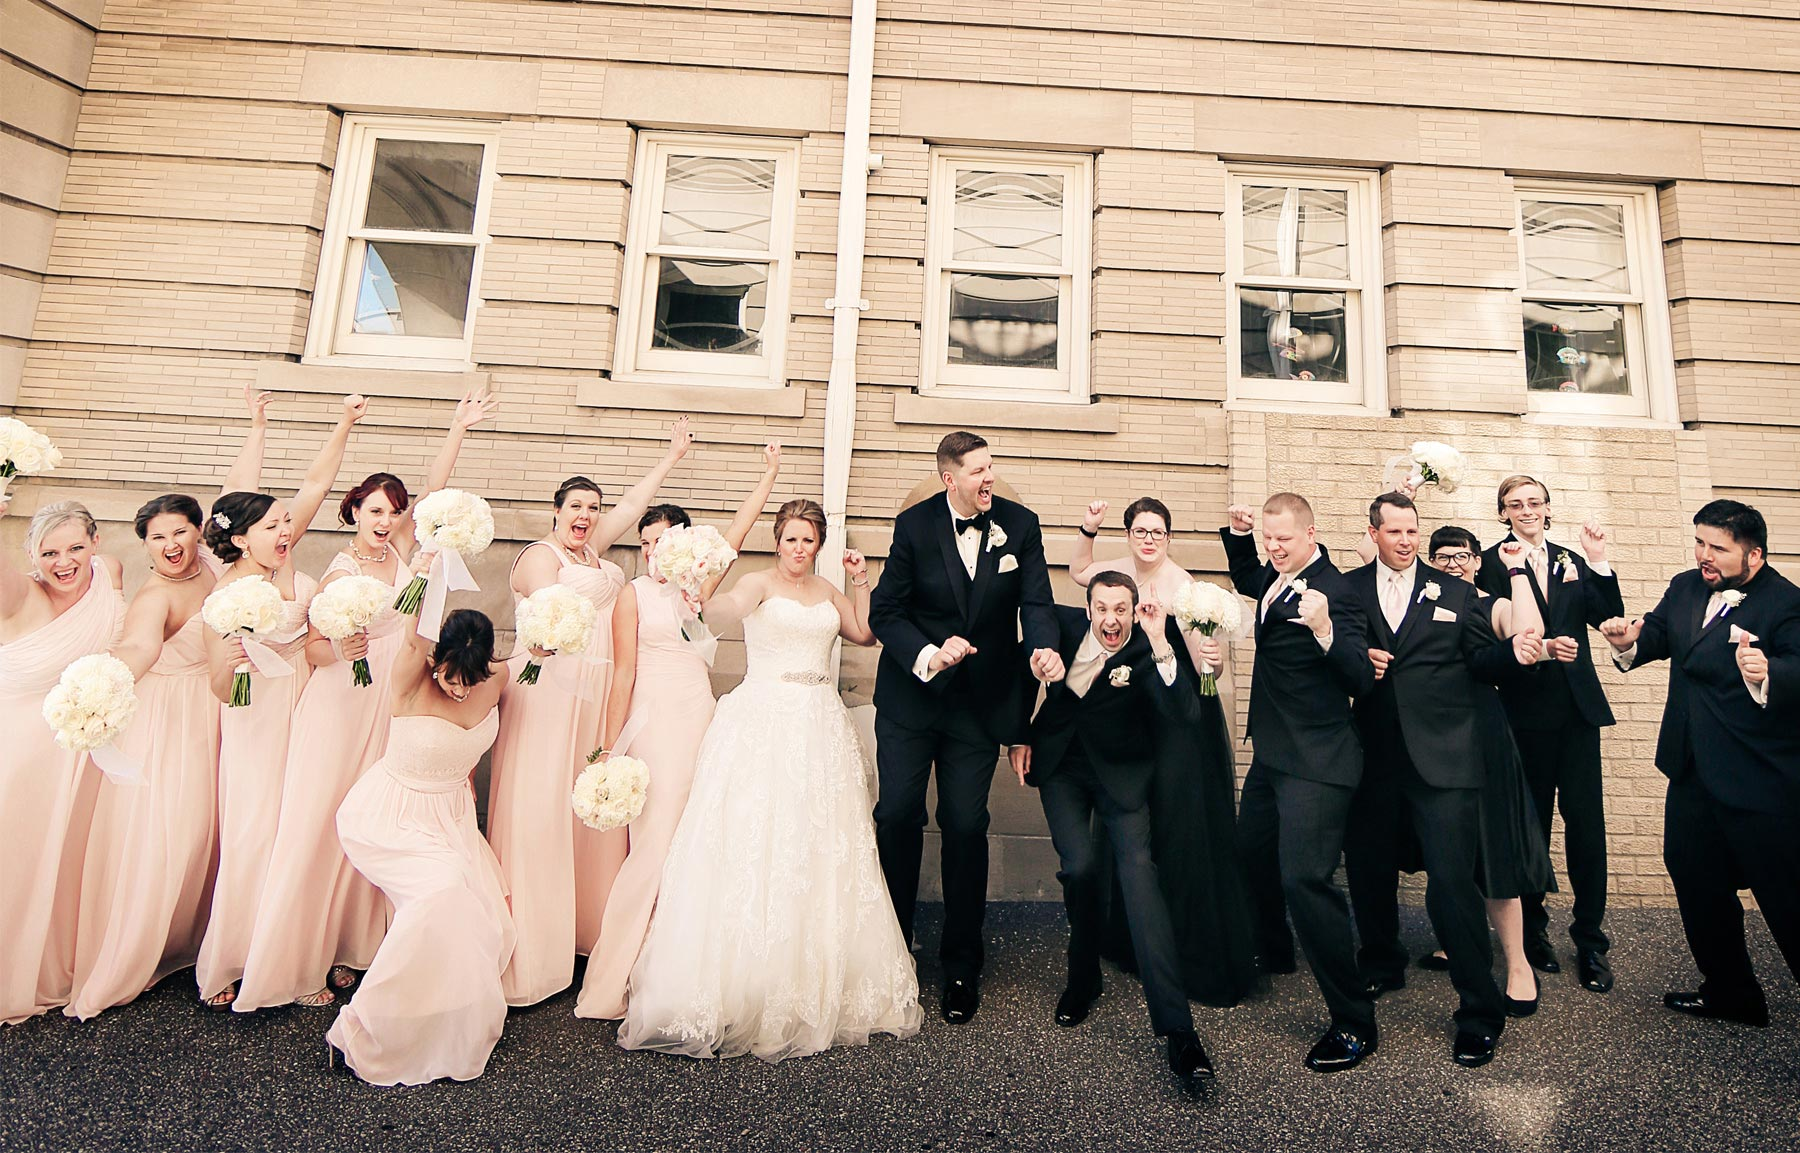 09-Minneapolis-Minnesota-Wedding-Photography-by-Vick-Photography-Semple-Mansion-Wedding-Party-Groups-Caitlin-&-Derrick.jpg